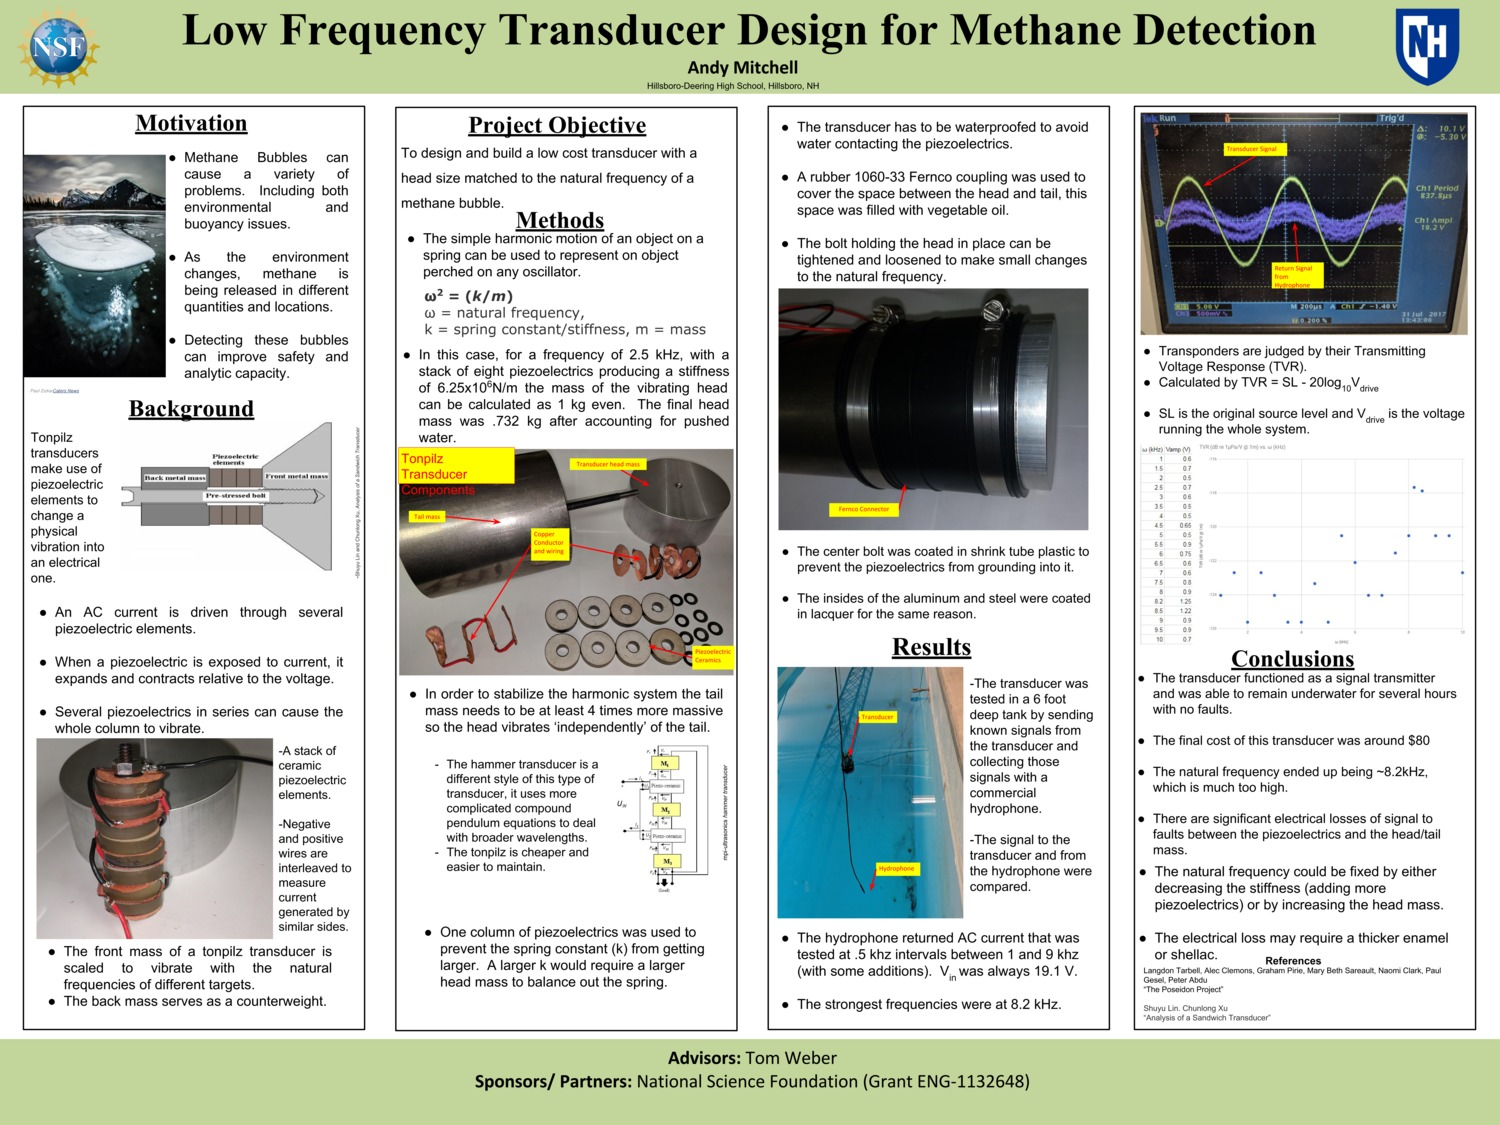 Low Frequency Transducer Design For Methane Detection by andym